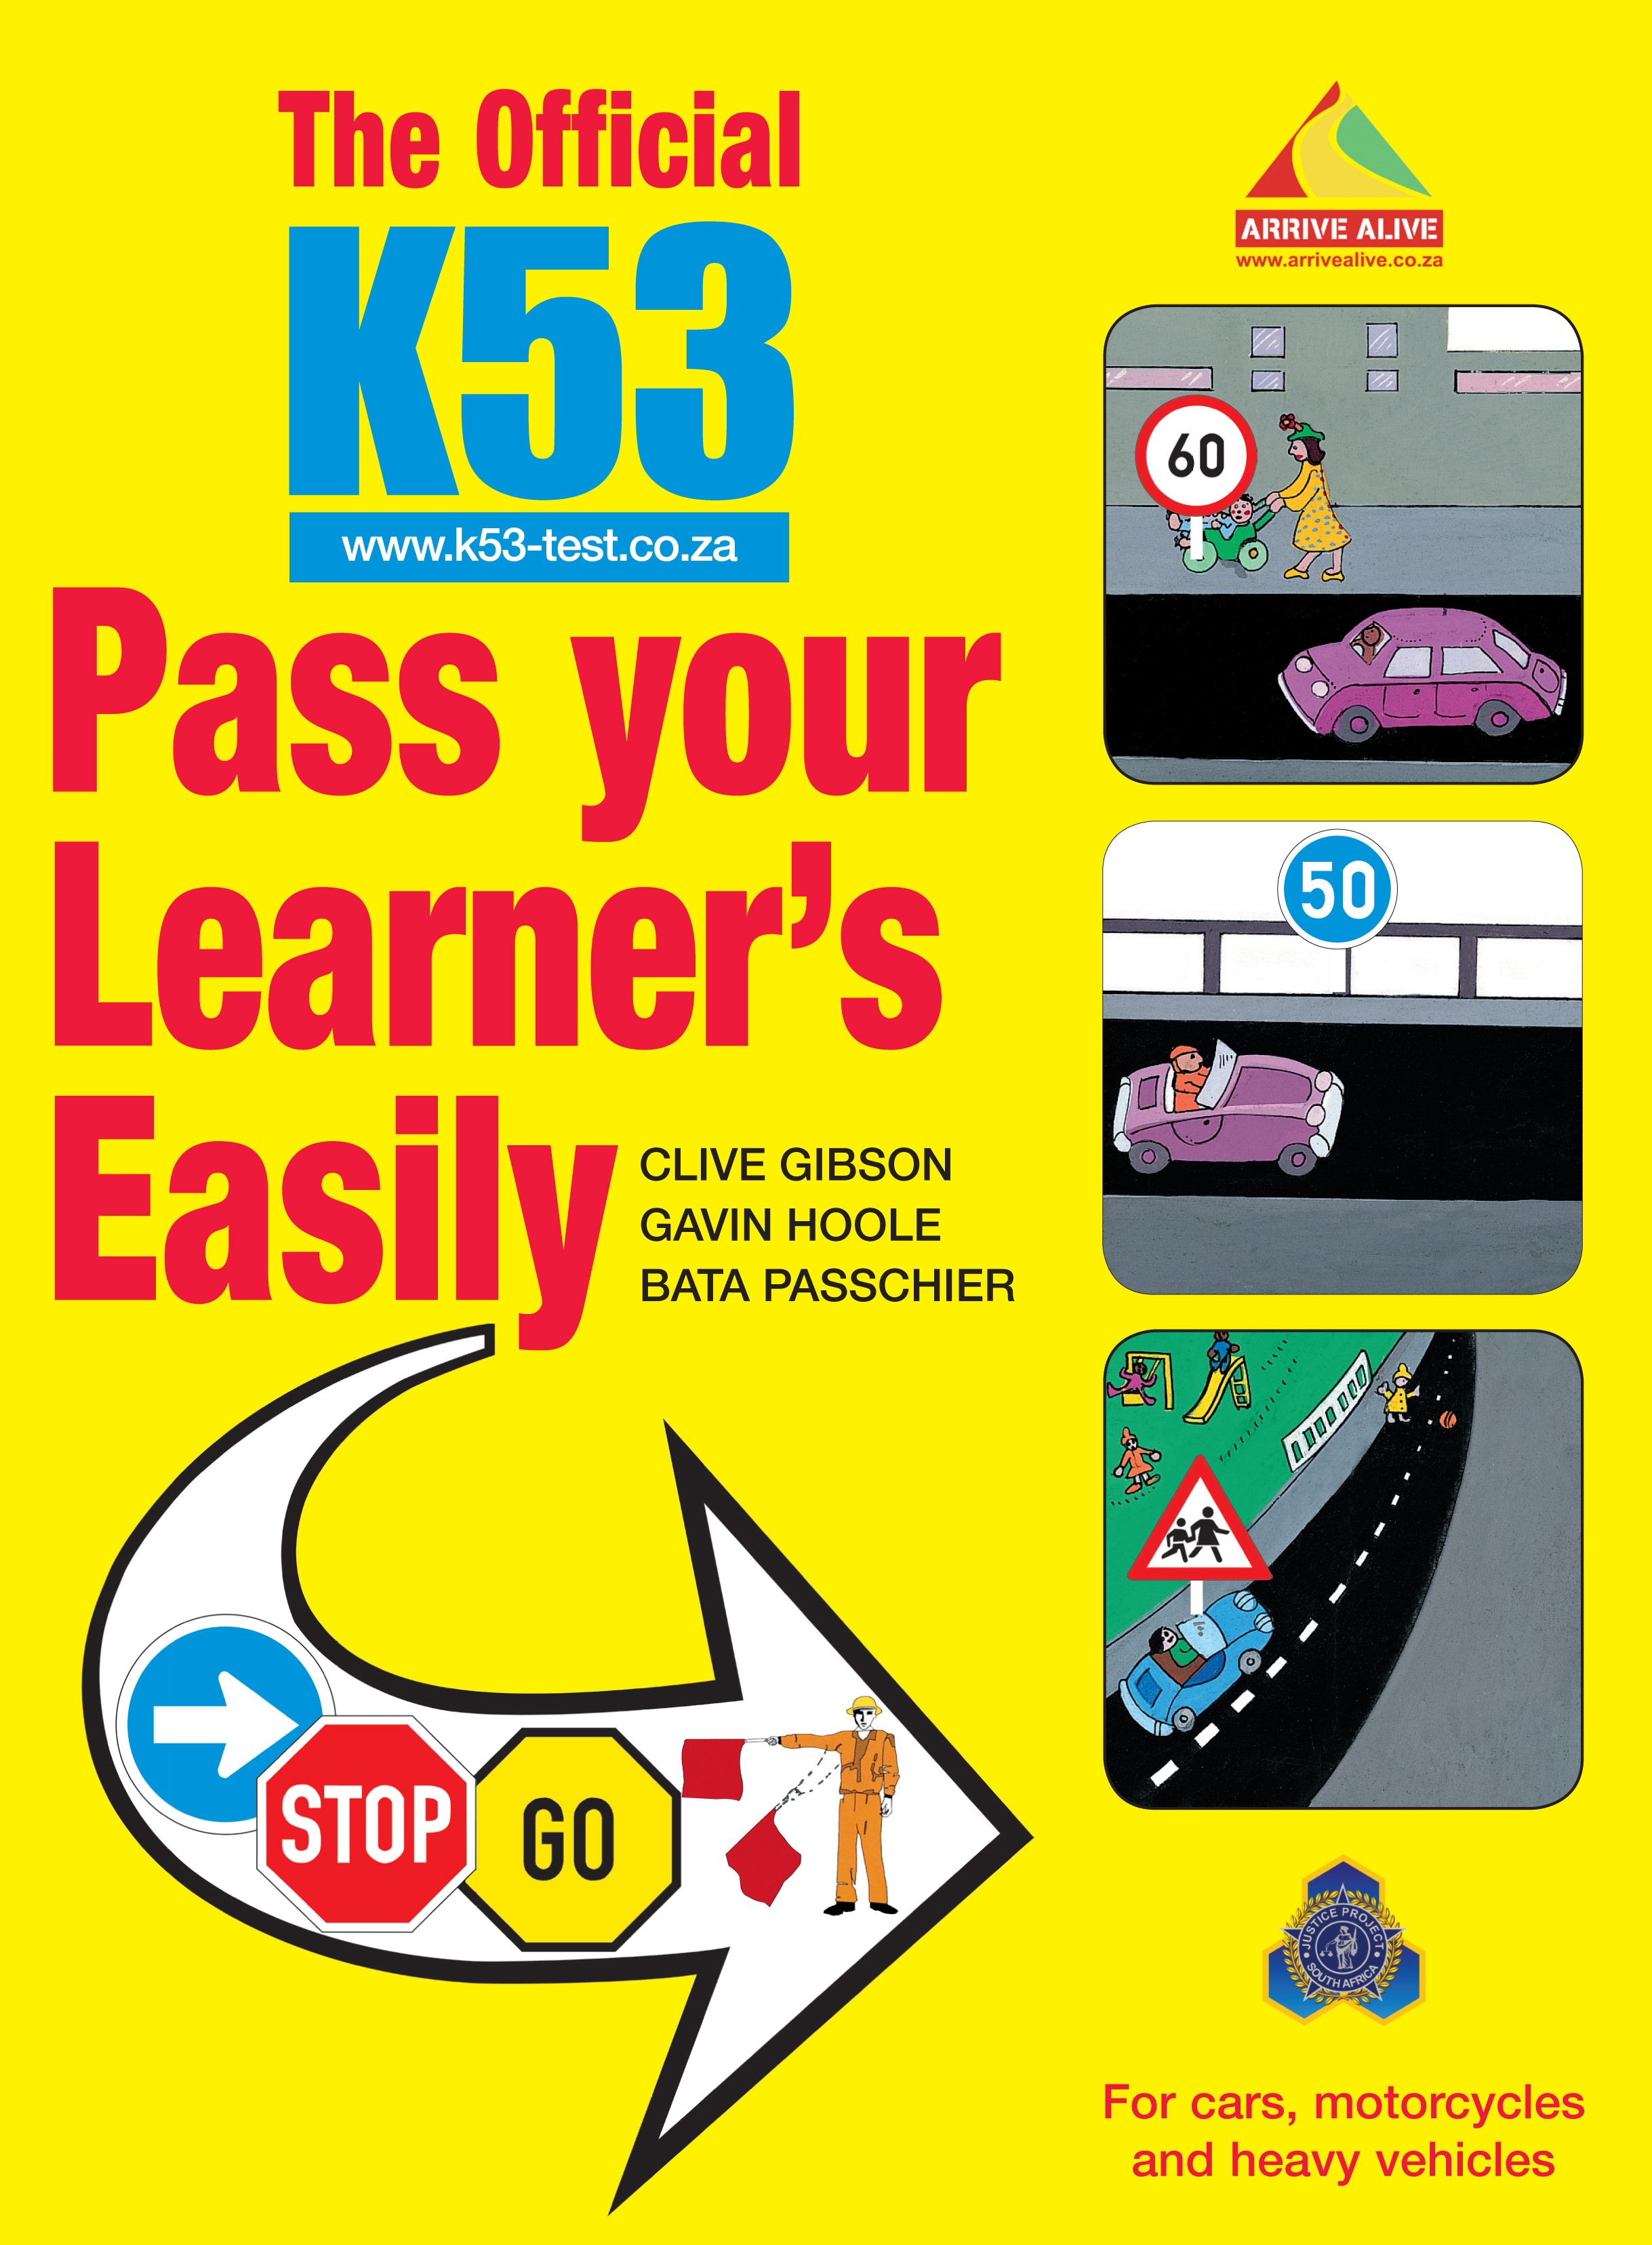 Picture of The official K53 pass your learner's easily